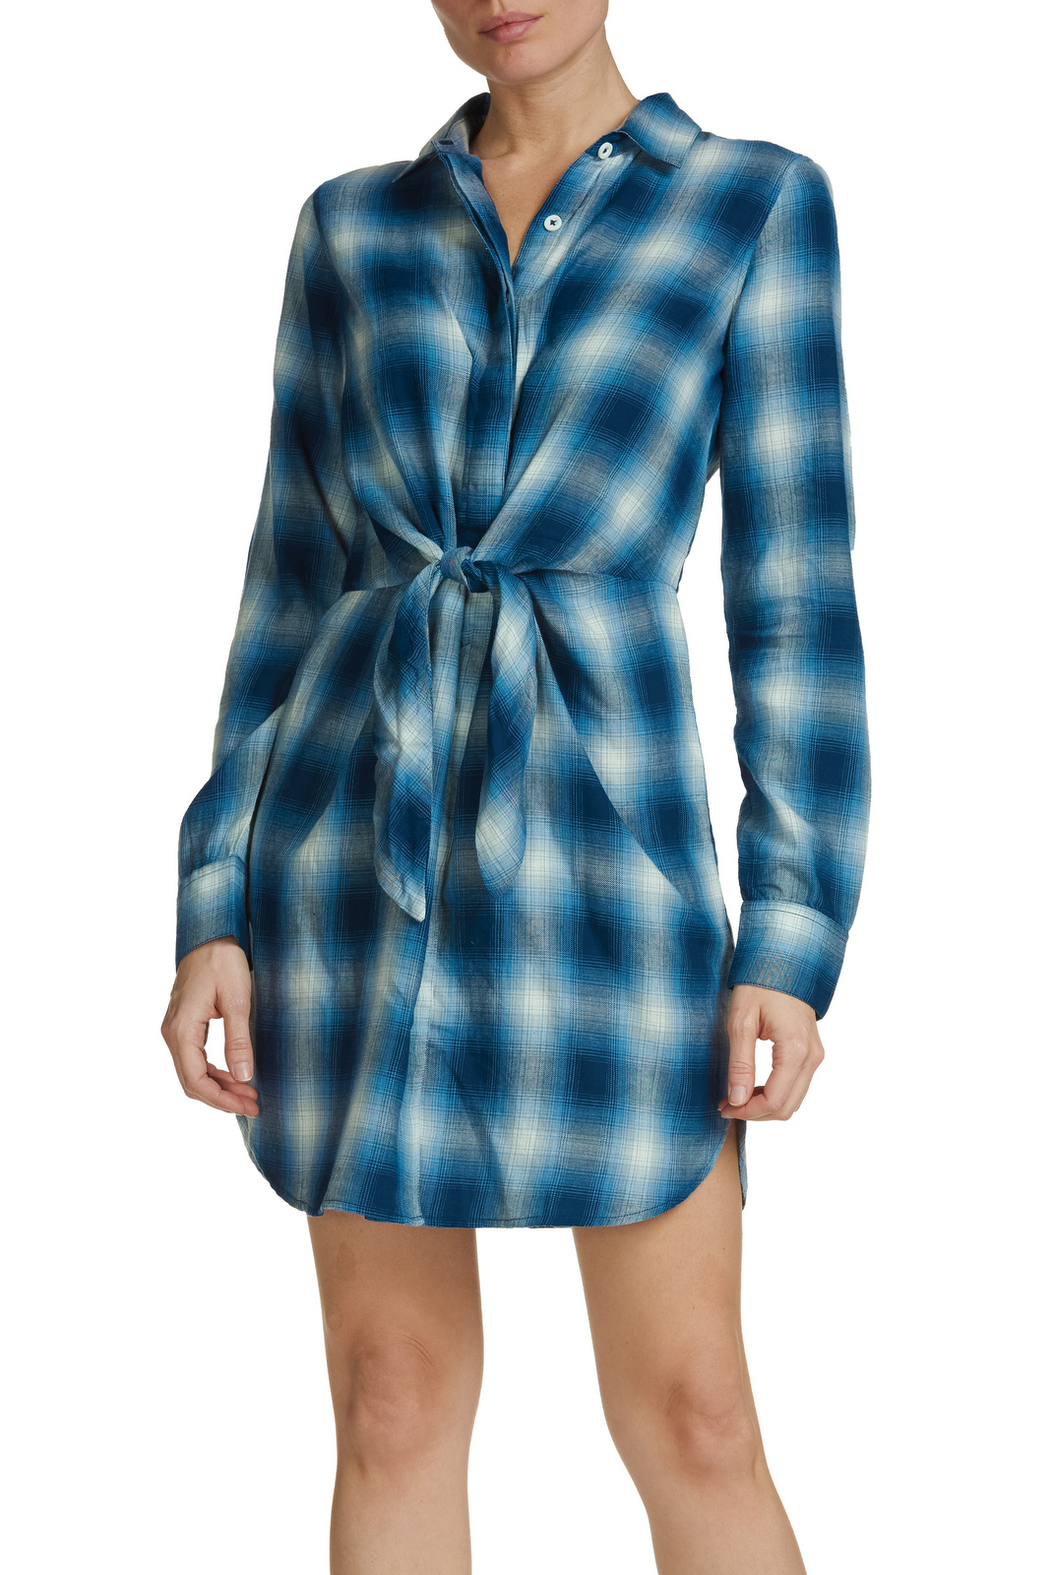 Elan Plaid Tie-Front Dress - Front Cropped Image